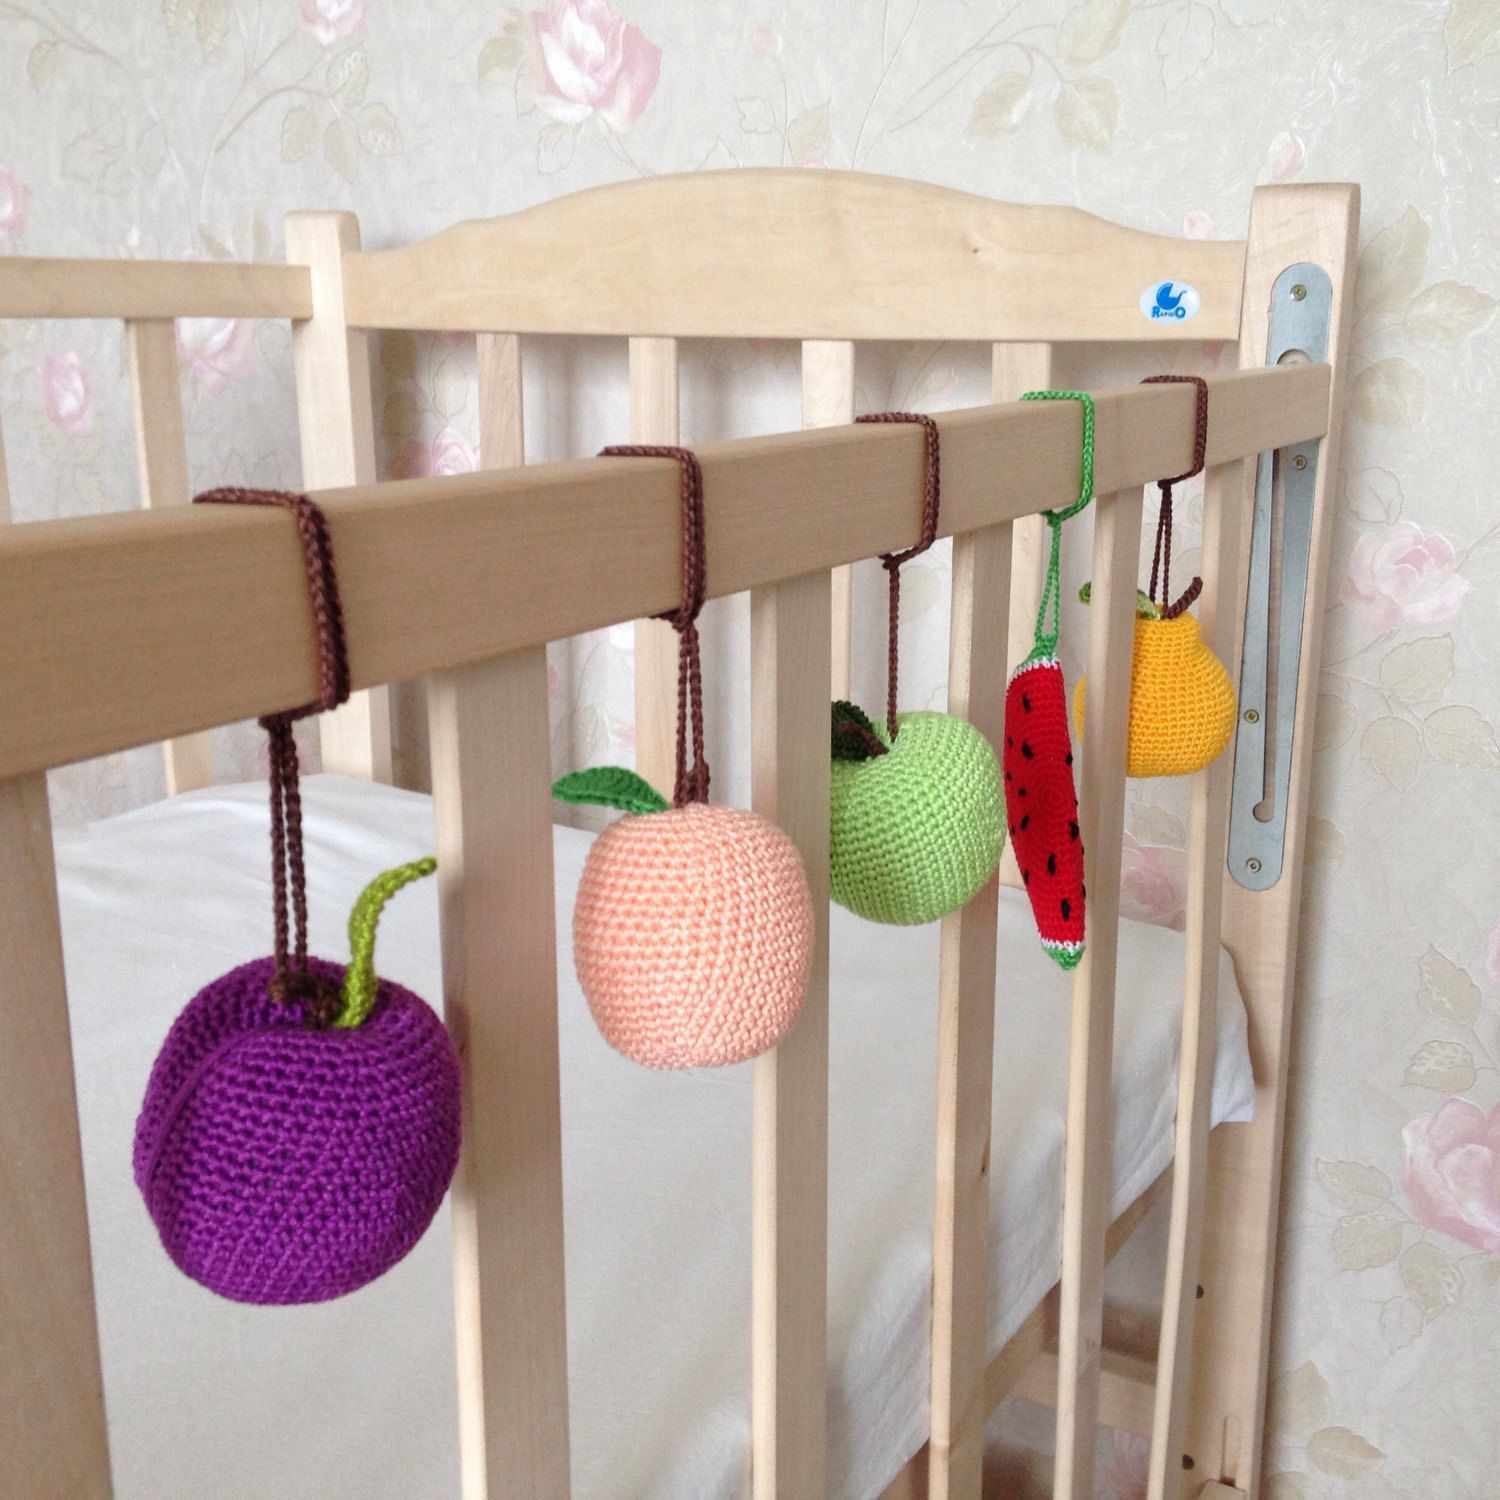 Crib gym for babies - Fruits For A Baby Gym Can Be Used As Toys For A Crib As Well